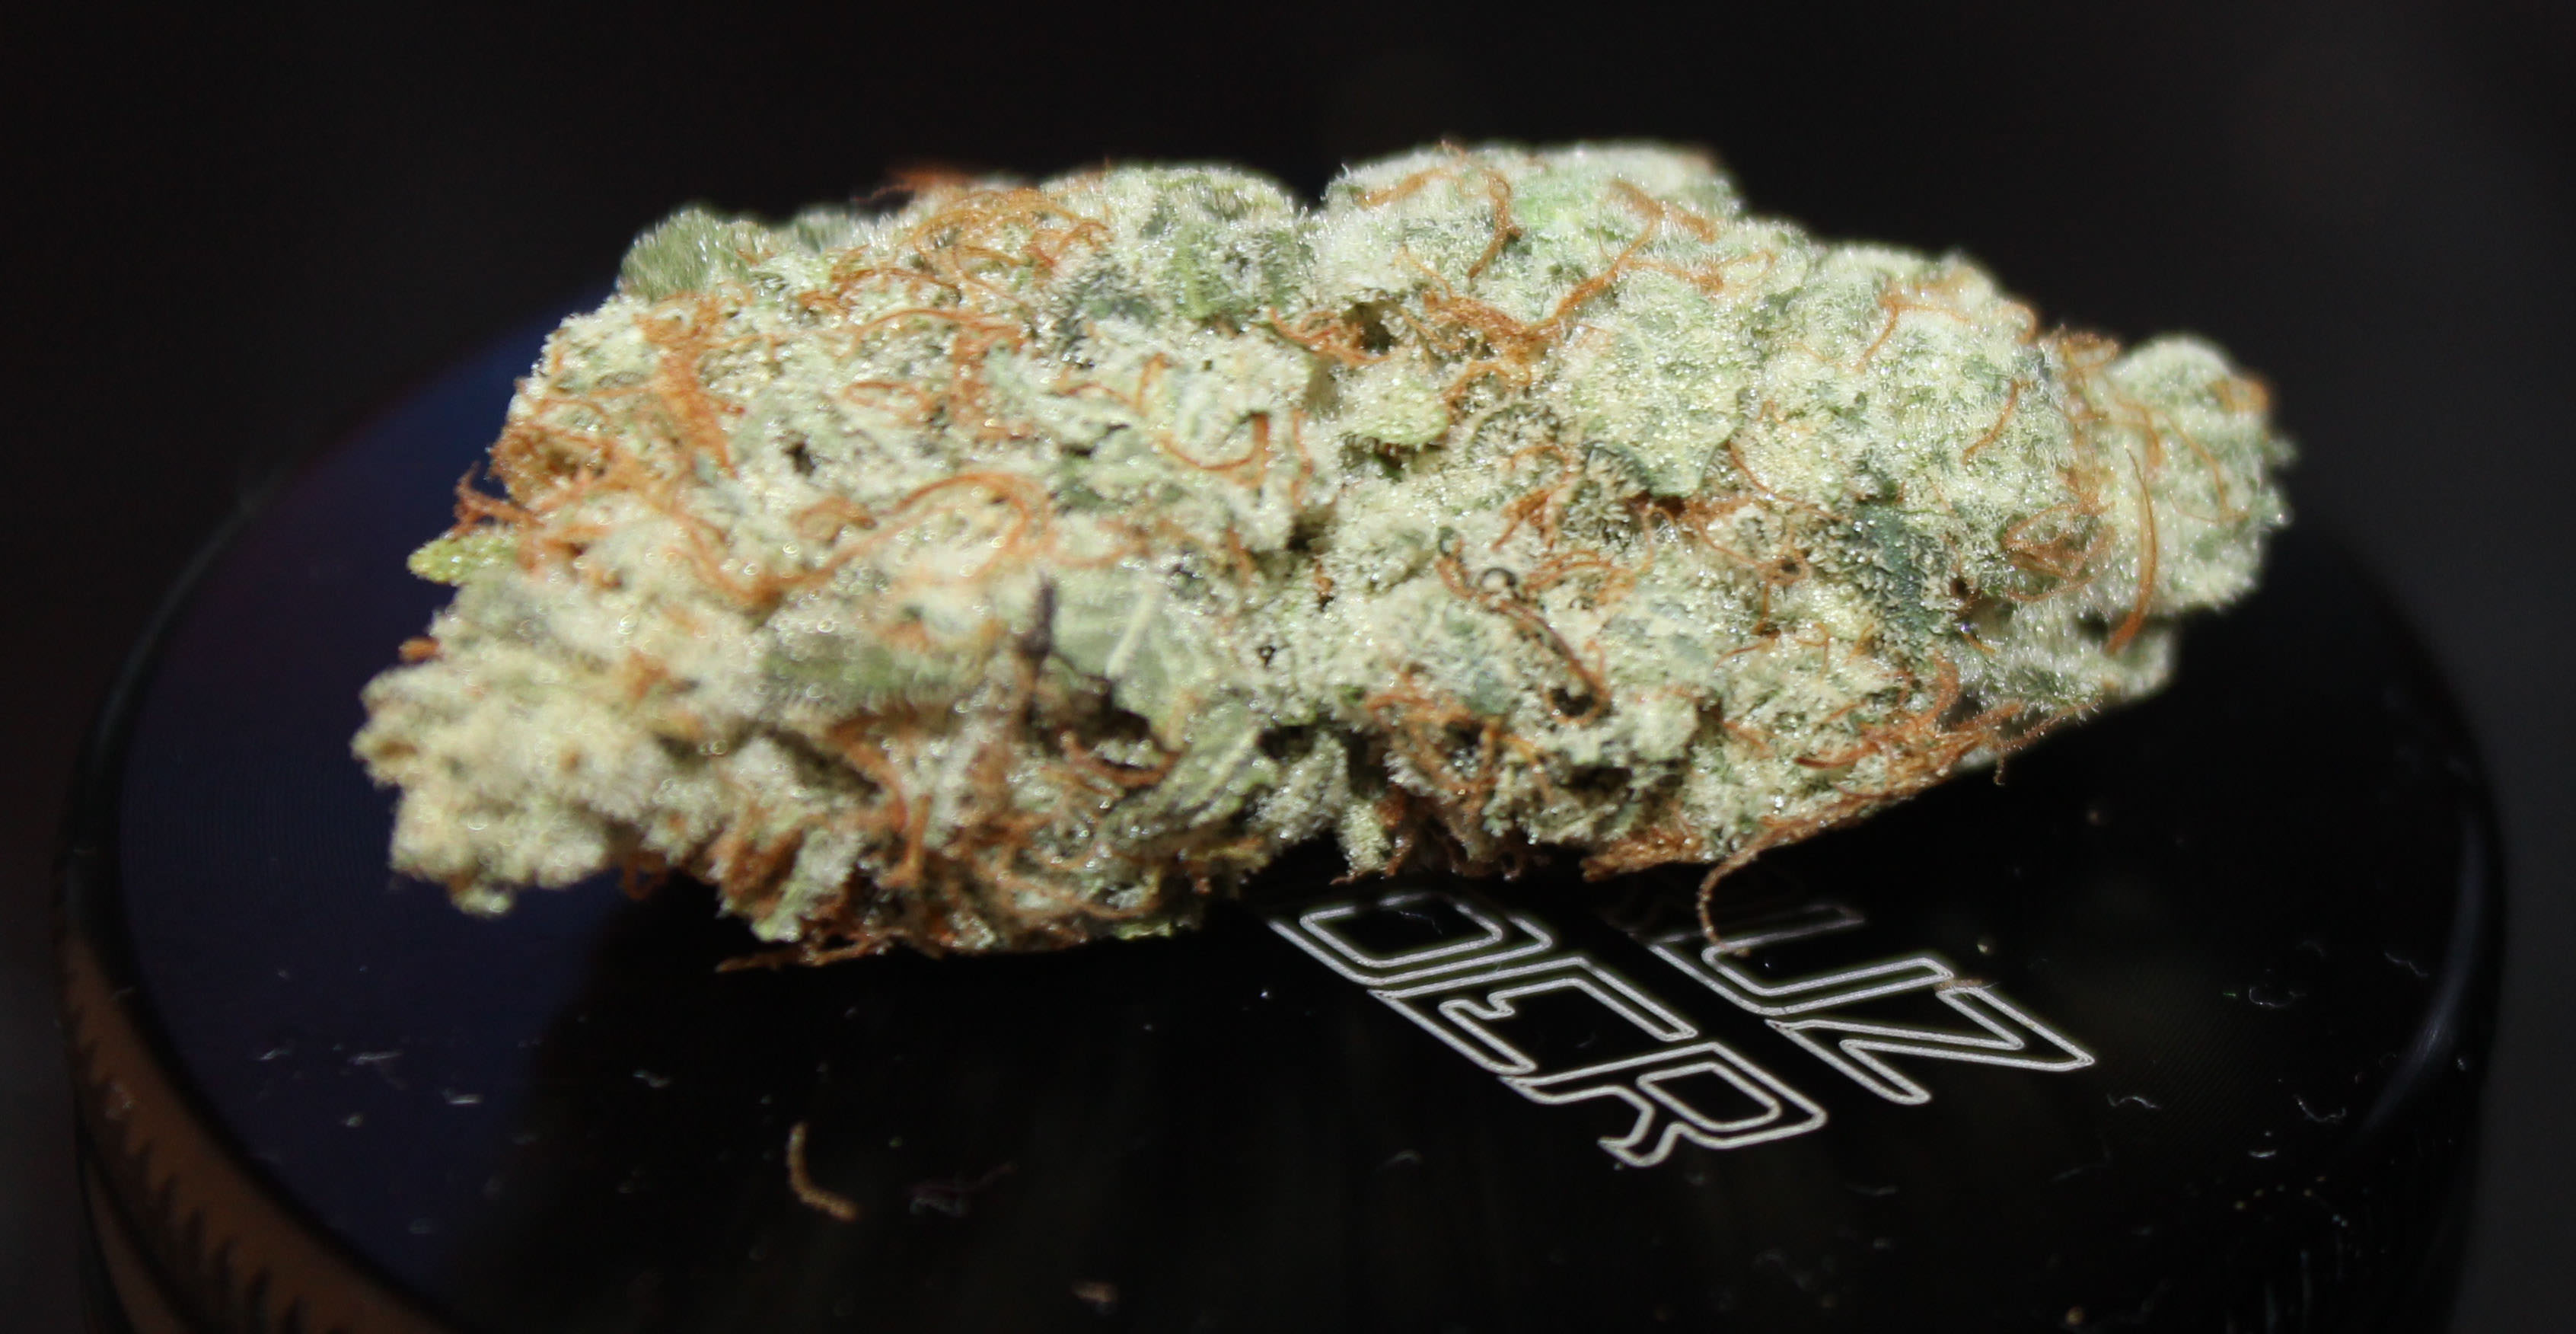 Gorilla Glue #4 Marijuana Strain Review and Pictures | NEWSTHC